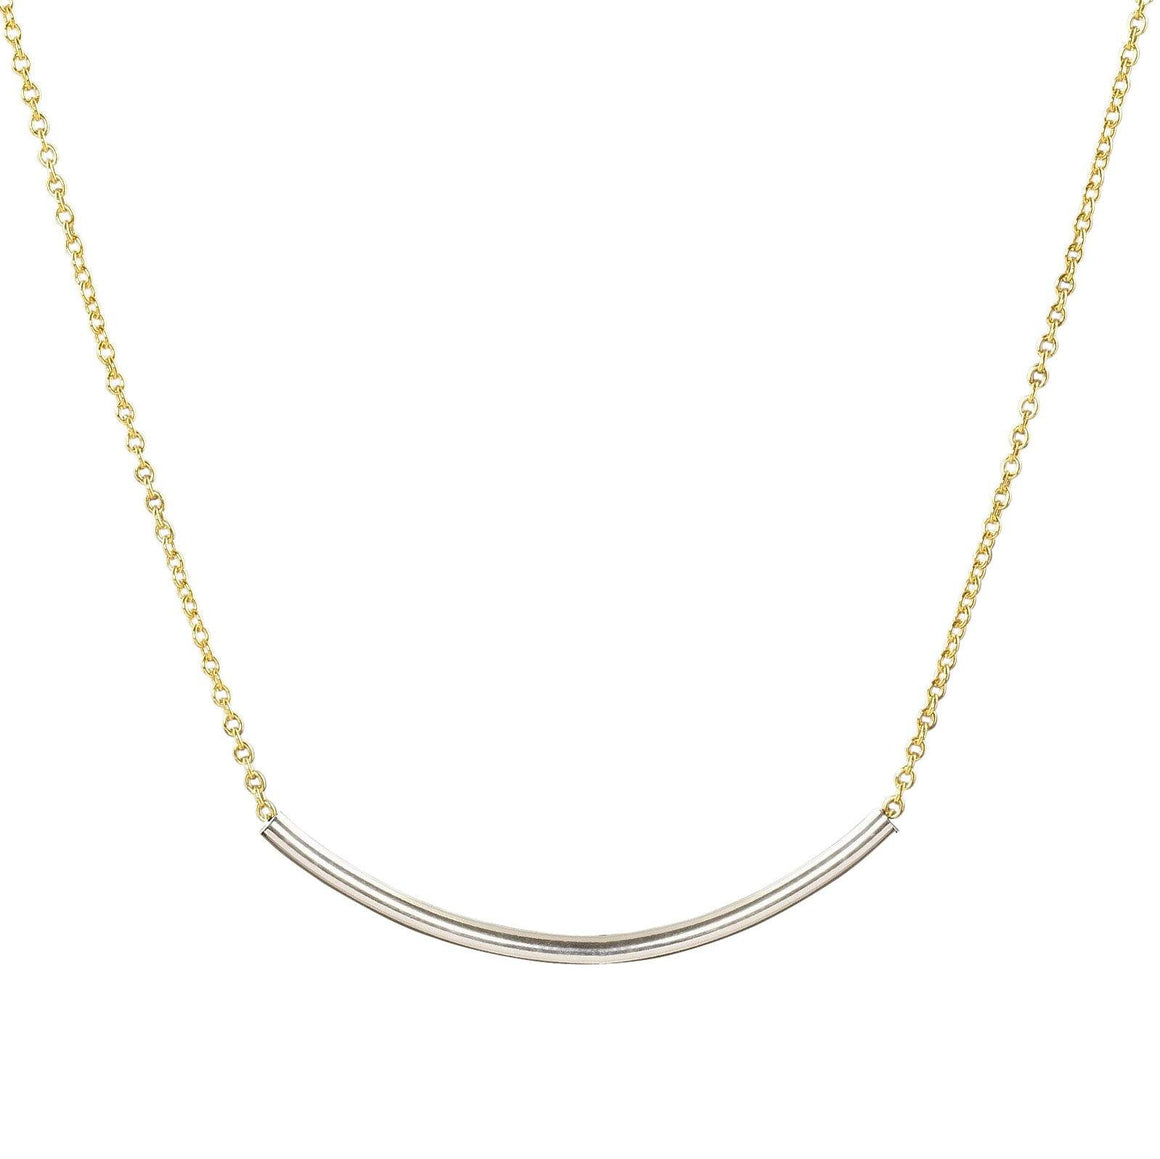 Minimalist layering necklace gold filled chain sterling silver bar